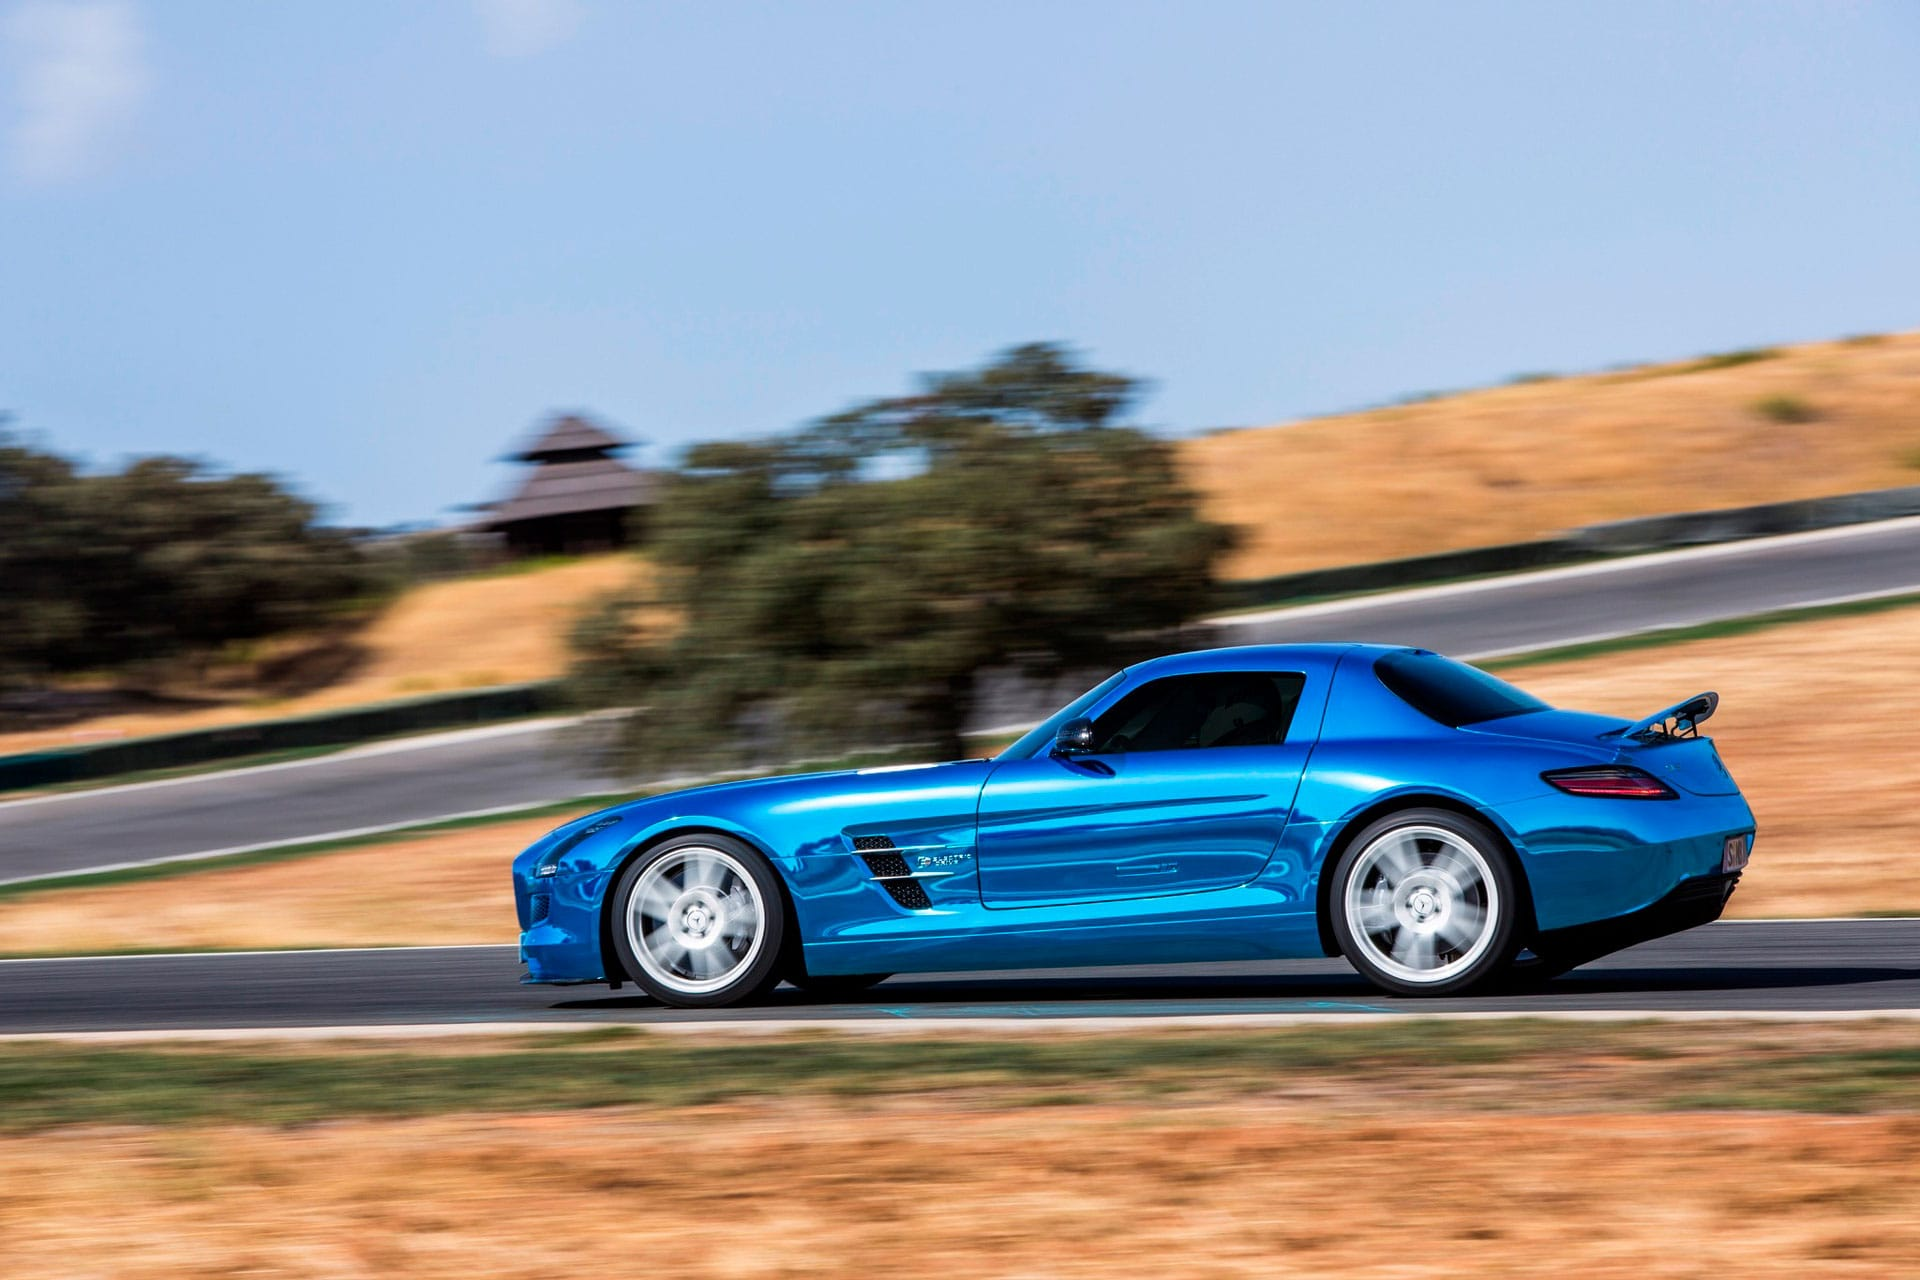 Культовый автомобиль Mercedes-Benz SLS AMG Coupe вид сбоку